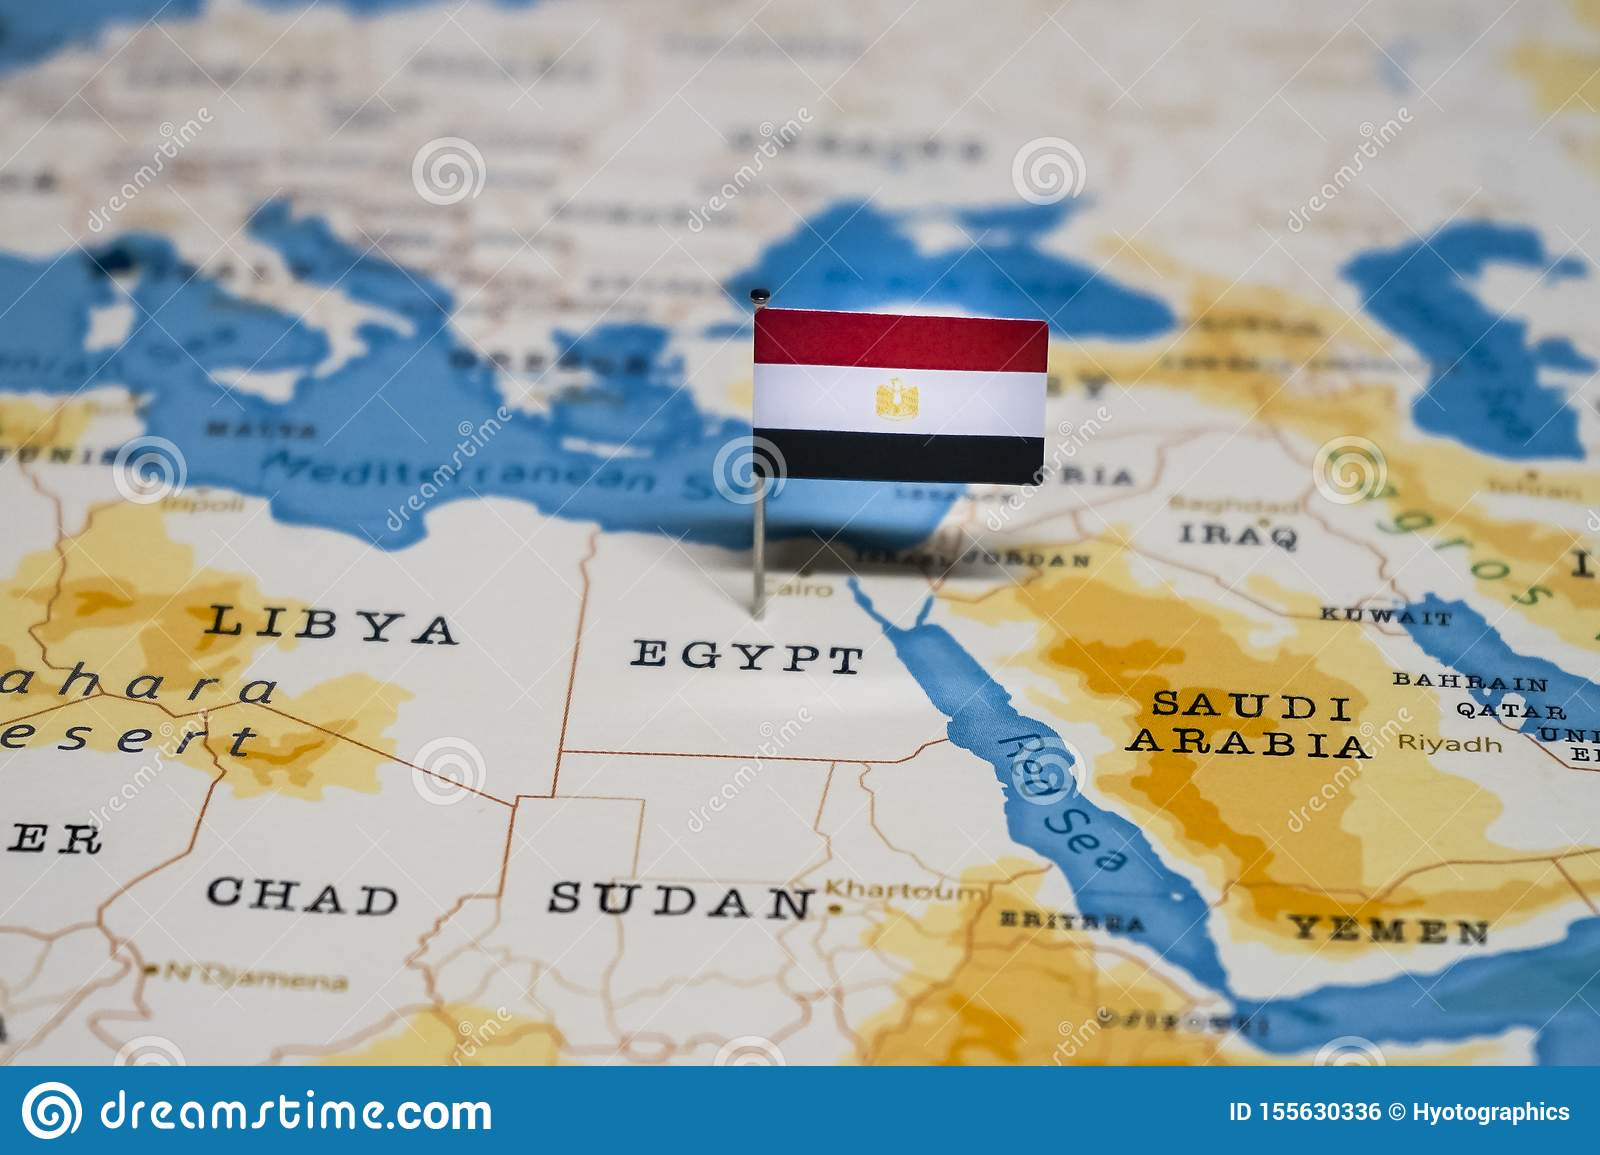 The Flag Of Egypt In The World Map Stock Photo - Image of ...